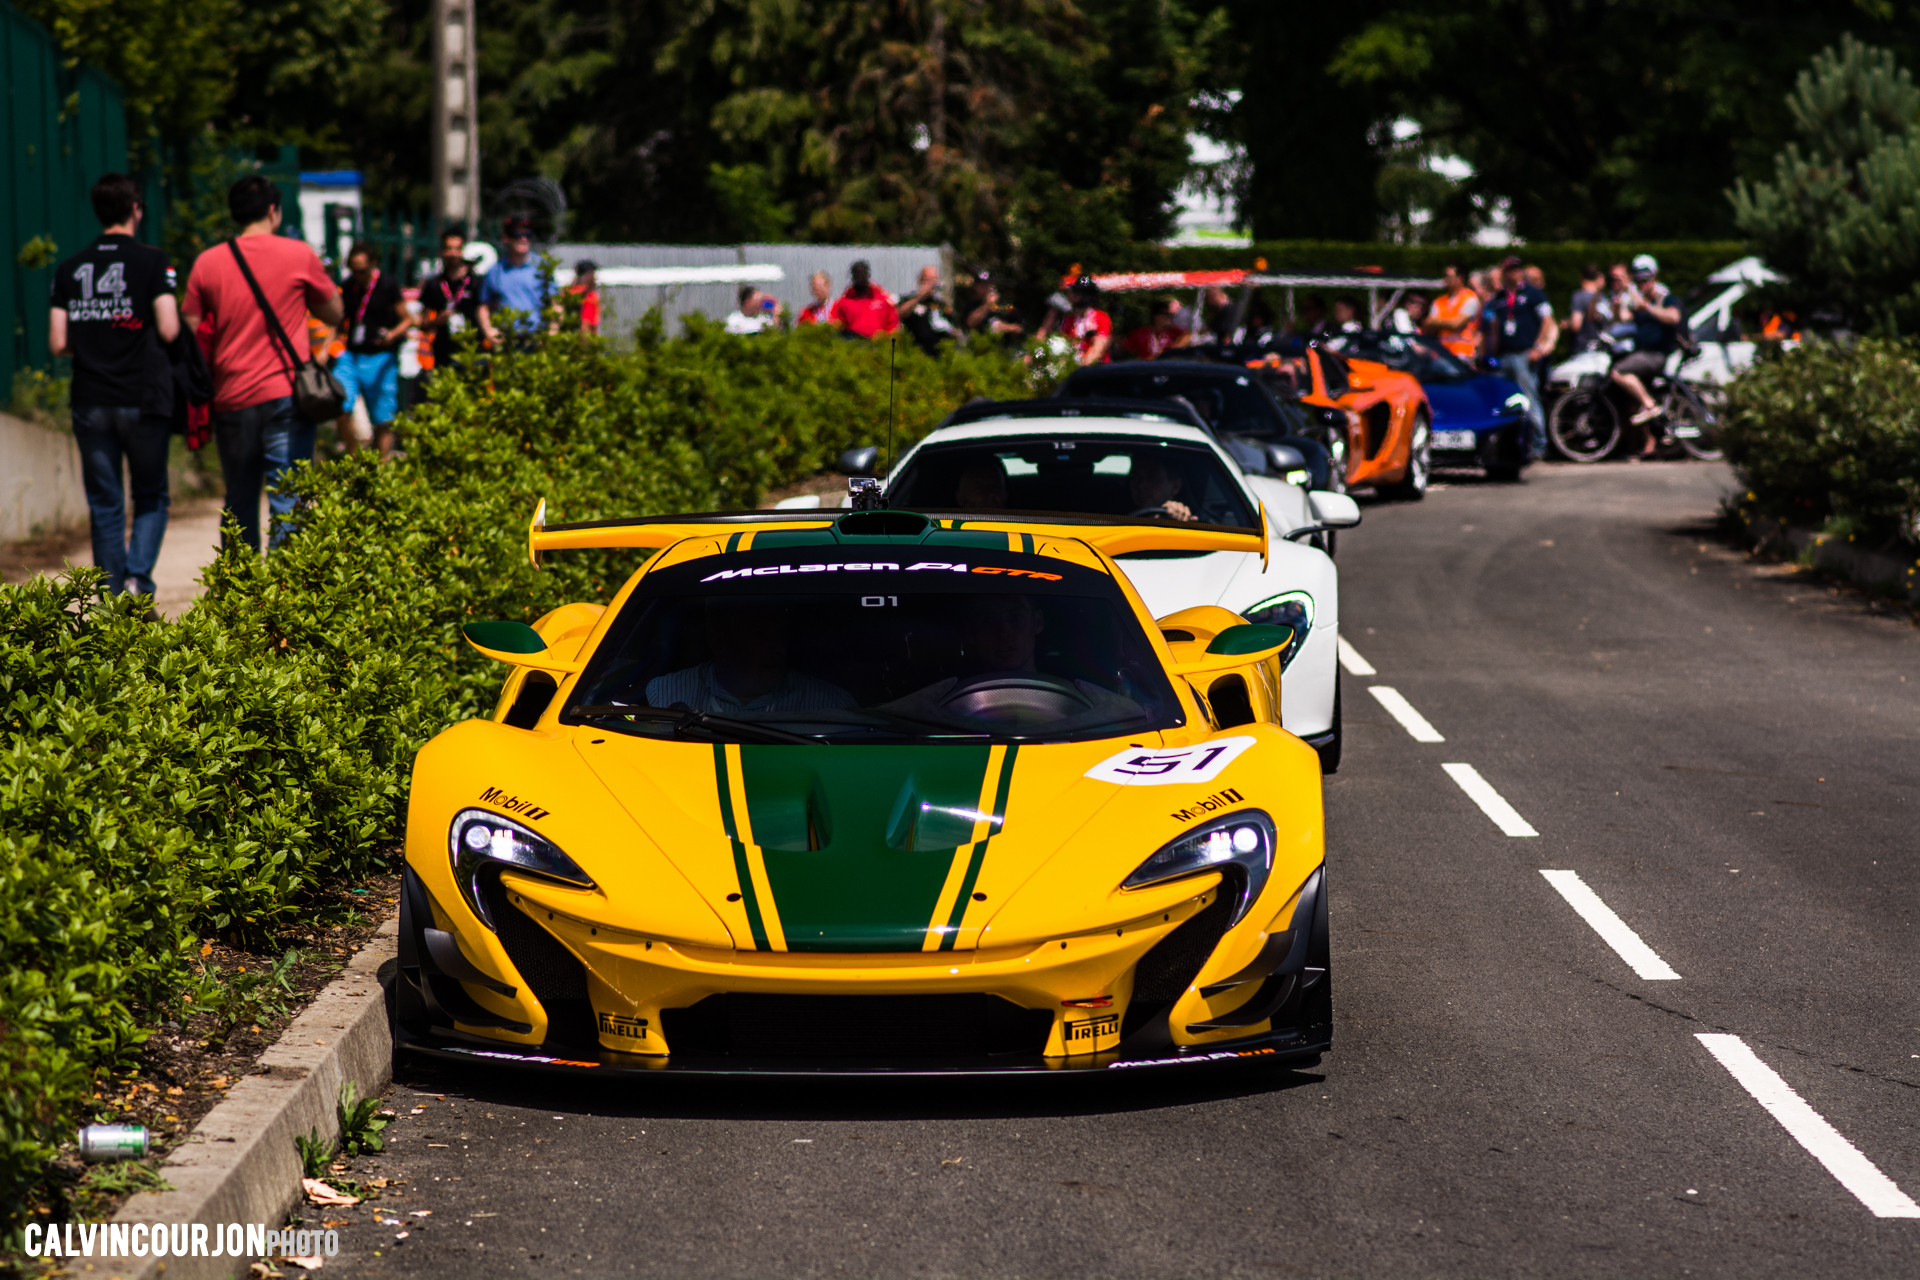 McLaren P1 GTR - Harrods livery - McLaren95 parade at Le Mans - 2015 - photo Calvin Courjon